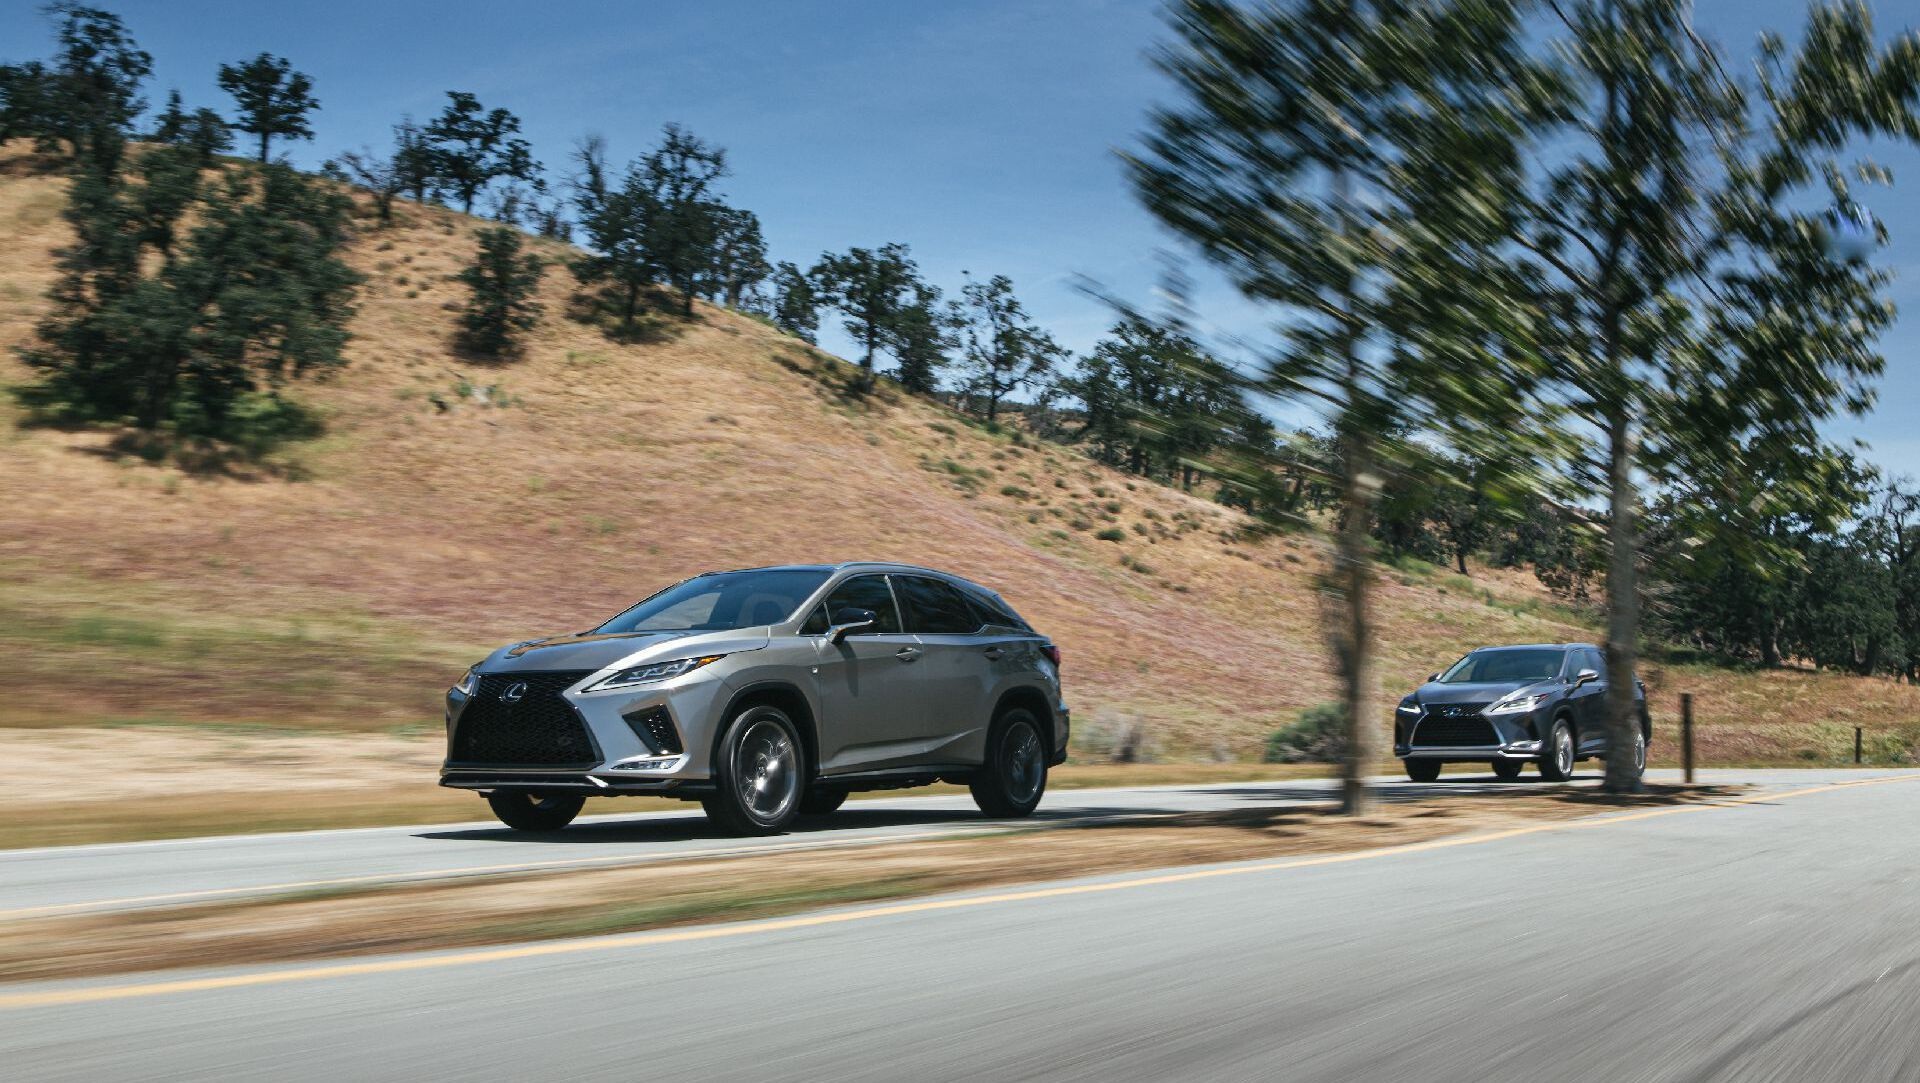 2020 Lexus Rx Gets Revised Looks And A Touchscreen Along With Apple